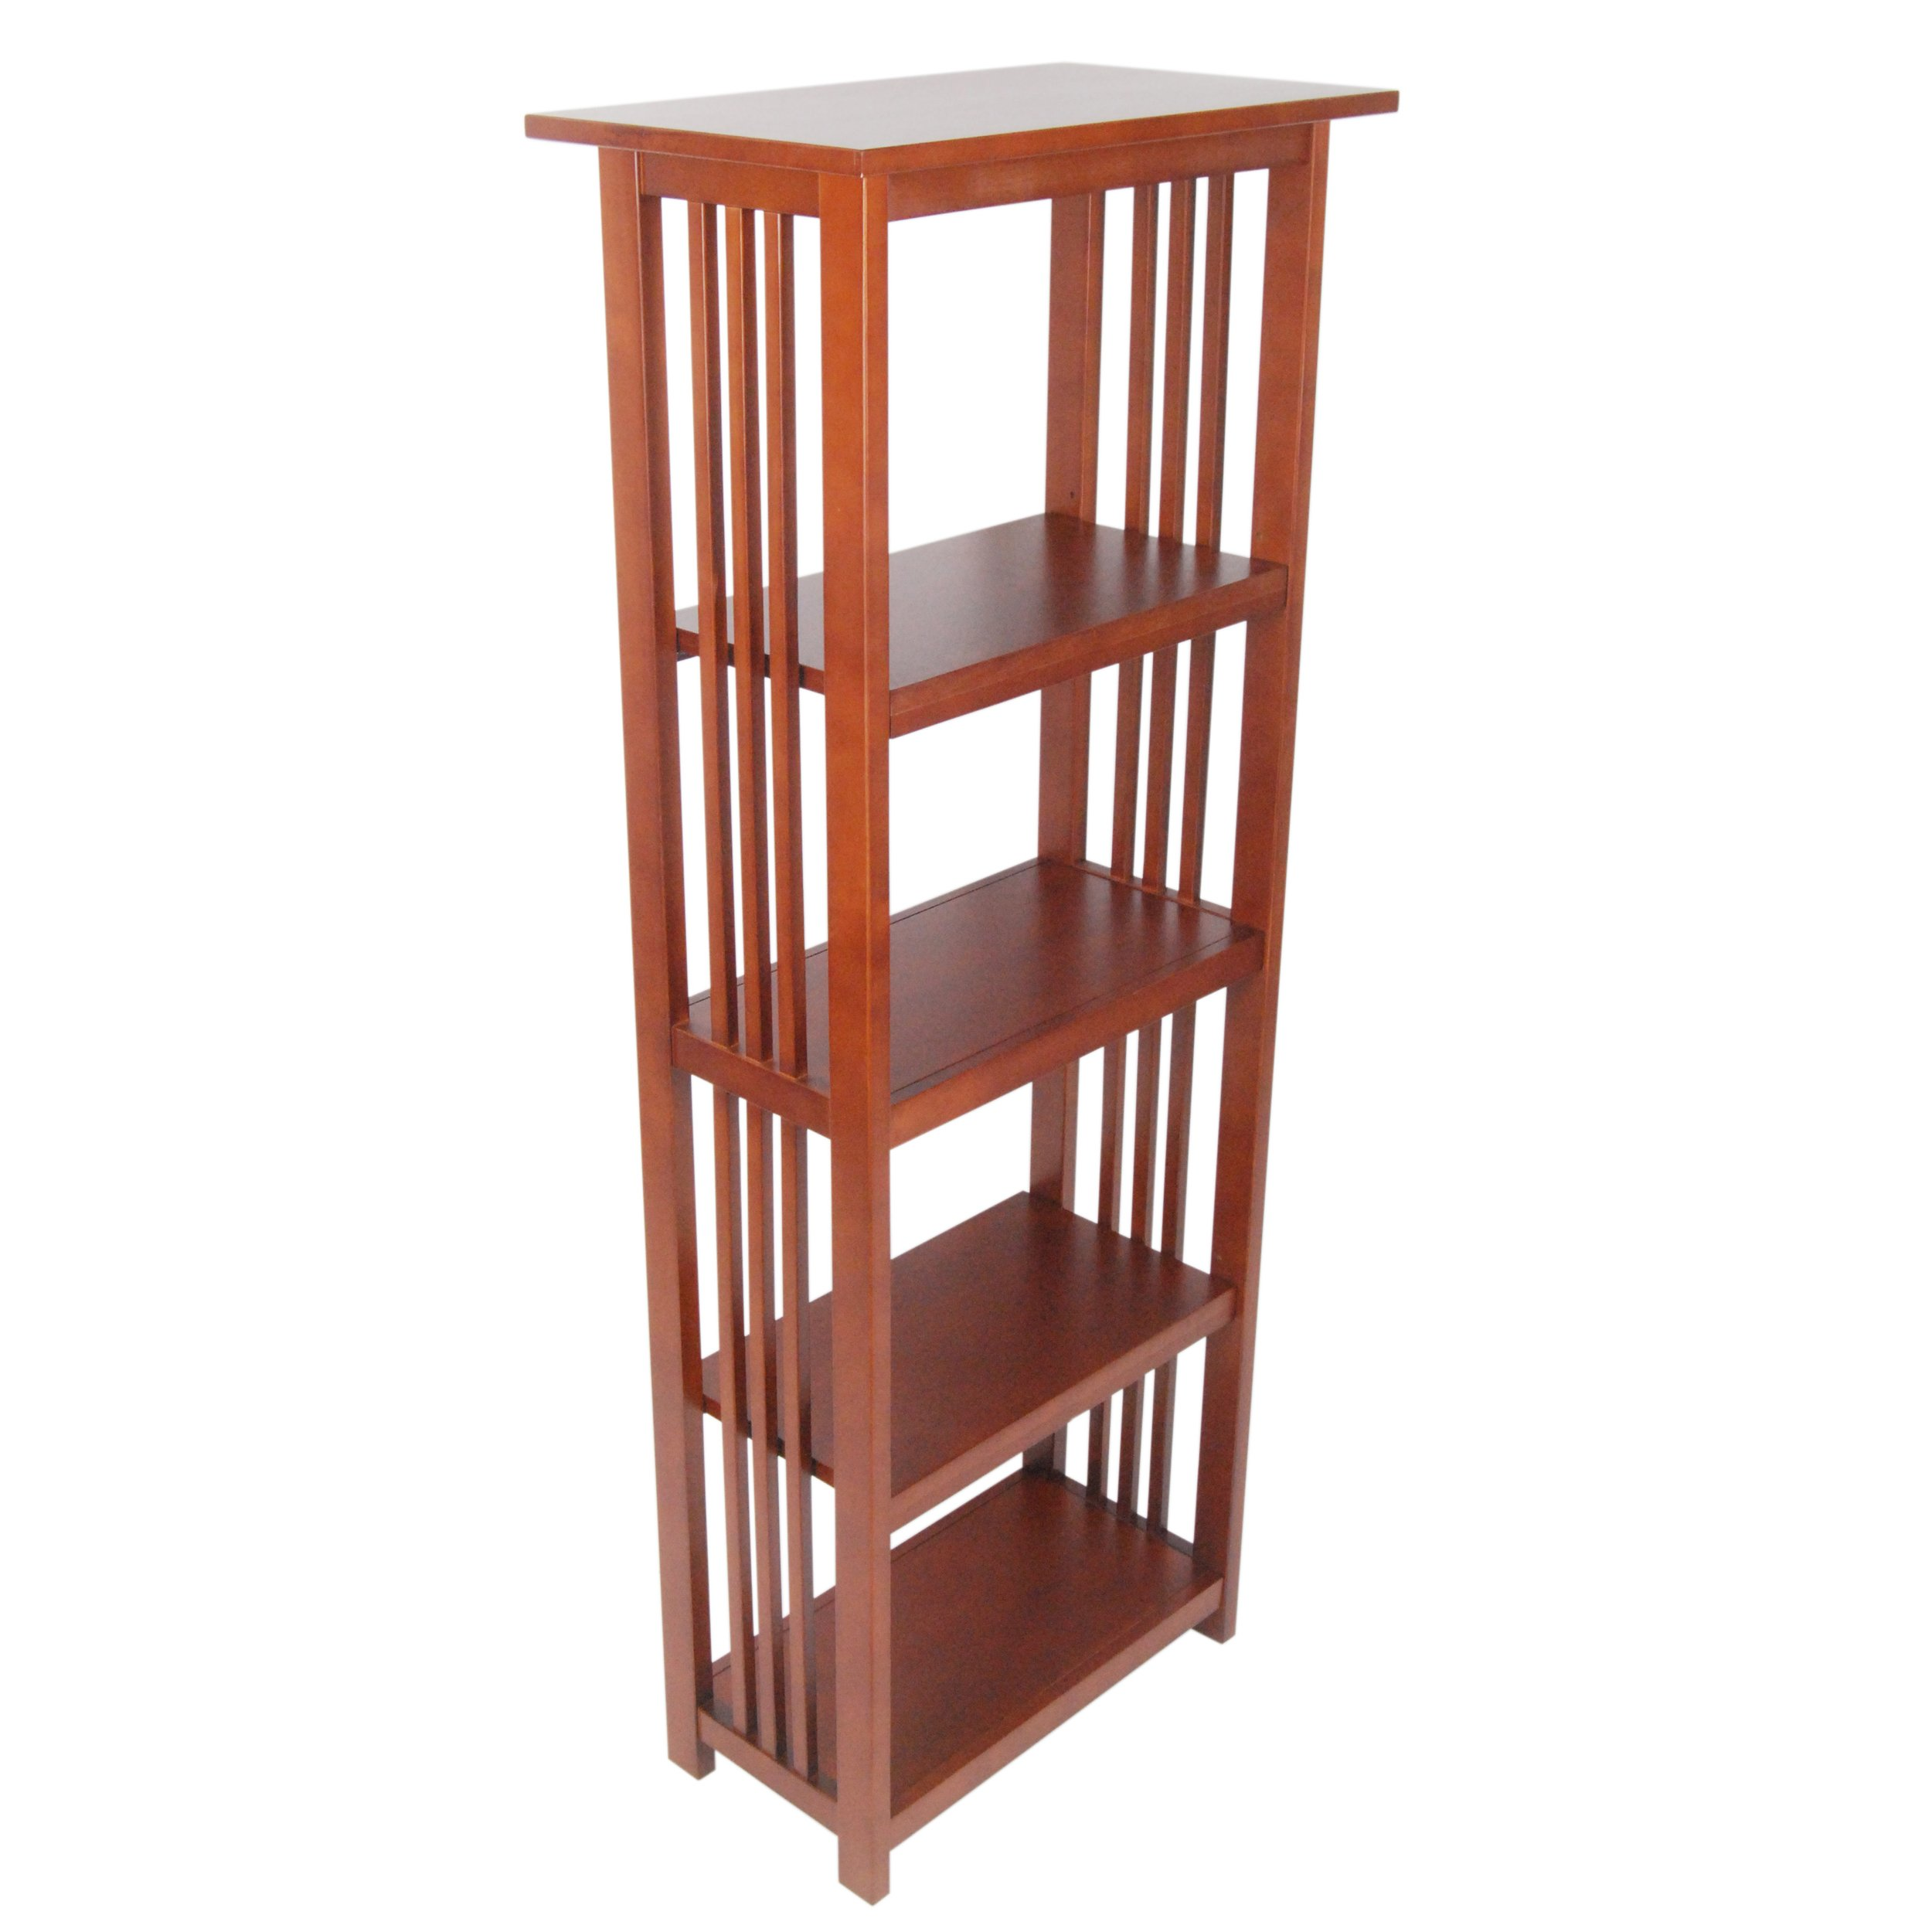 Alaterre Artisan Bookcase, 60-Inch, Cherry